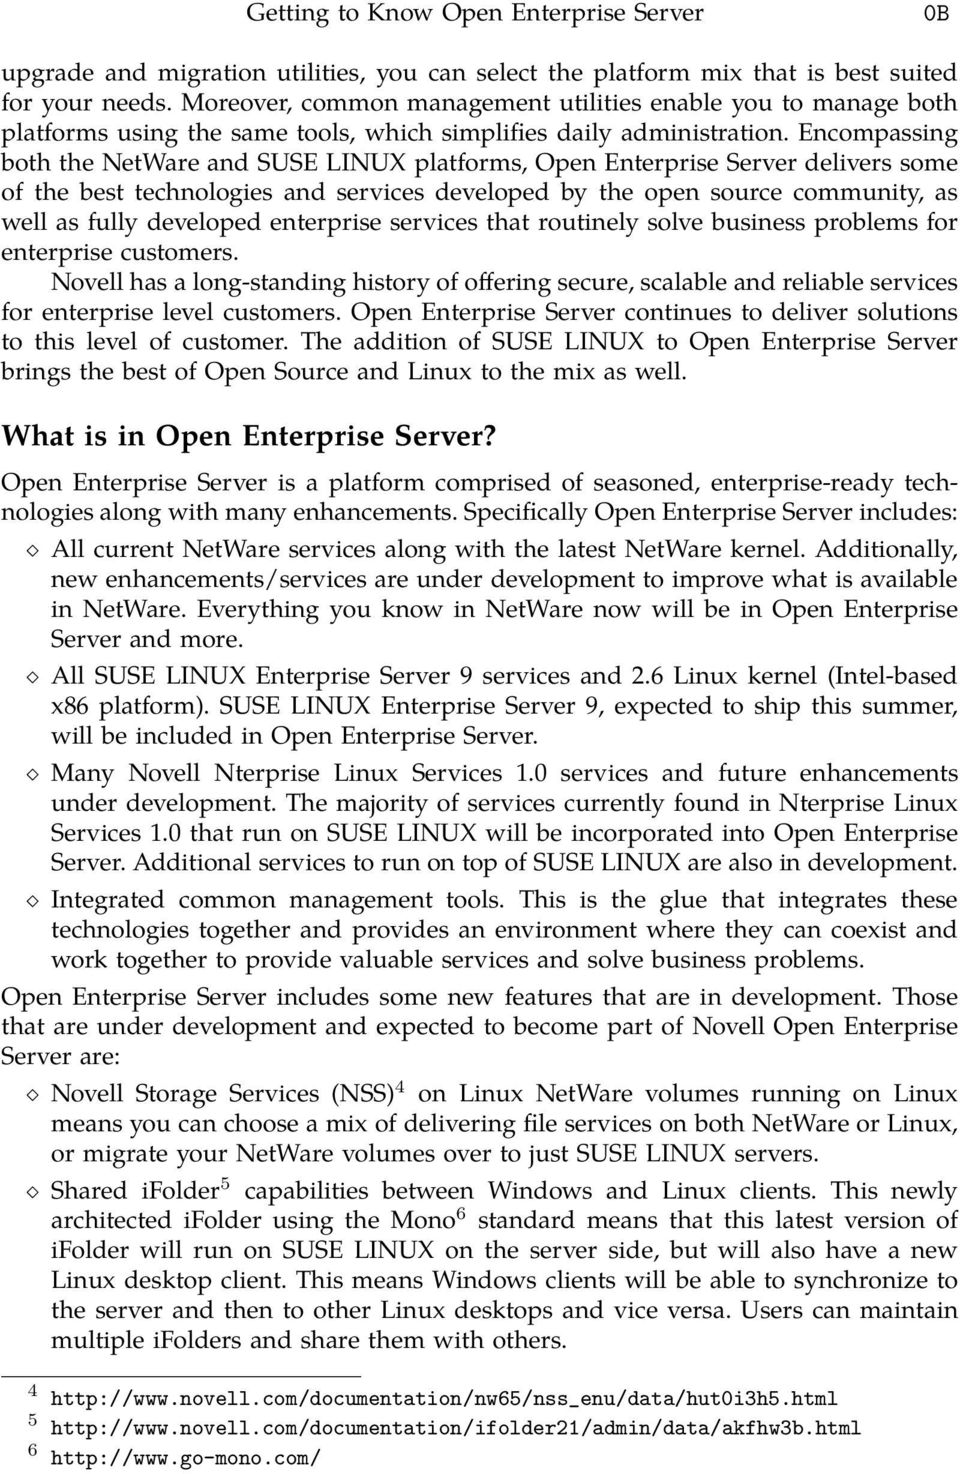 Encompassing both the NetWare and SUSE LINUX platforms, Open Enterprise Server delivers some of the best technologies and services developed by the open source community, as well as fully developed